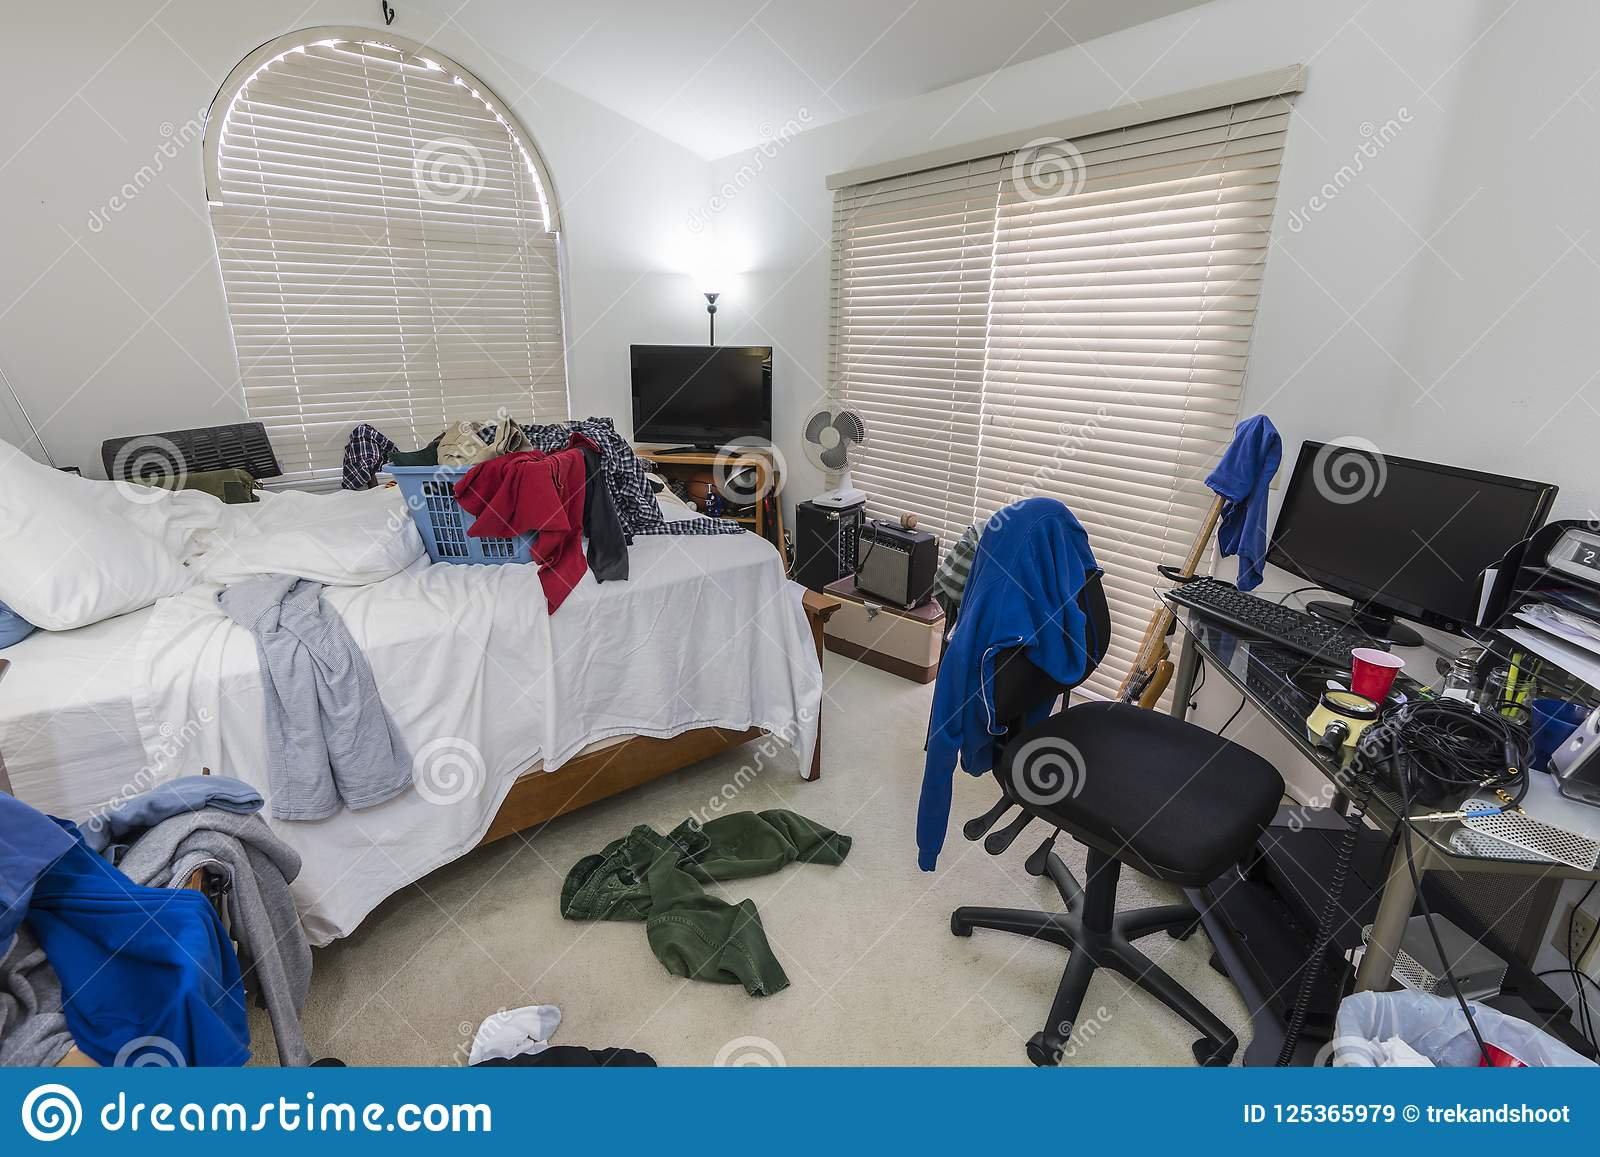 4 846 Messy Bedroom Photos Free Royalty Free Stock Photos From Dreamstime